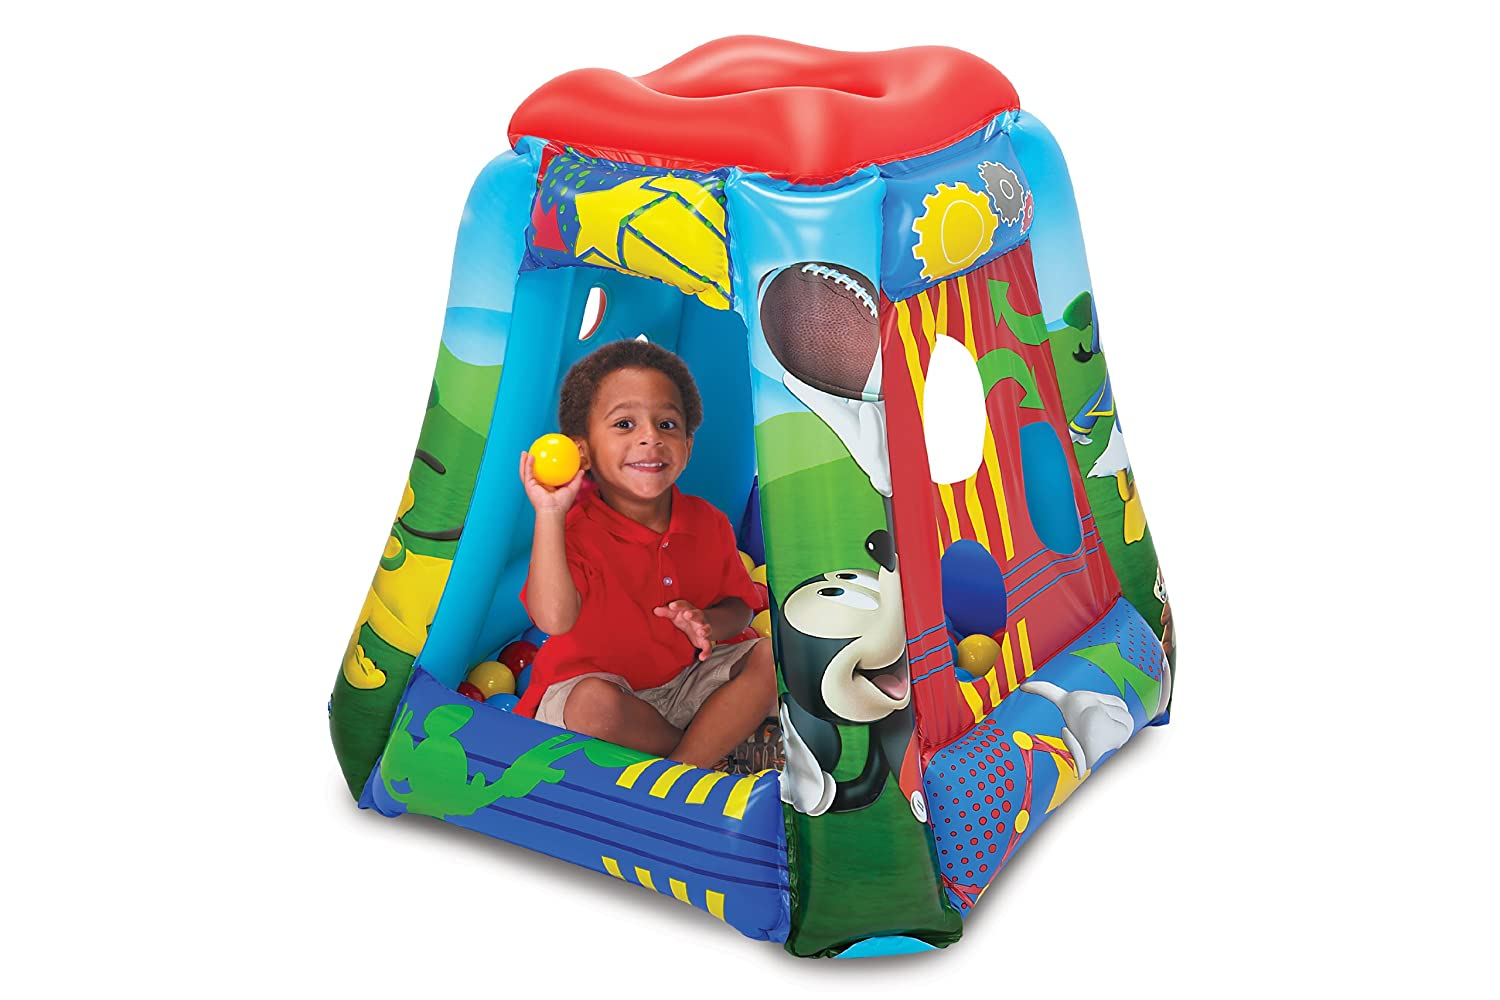 Inflatable Mickey Mouse Ball Pit Play House Unisex Toddlers Kids Portable Tent  sc 1 st  eBay & Inflatable Mickey Mouse Ball Pit Play House Unisex Toddlers Kids ...